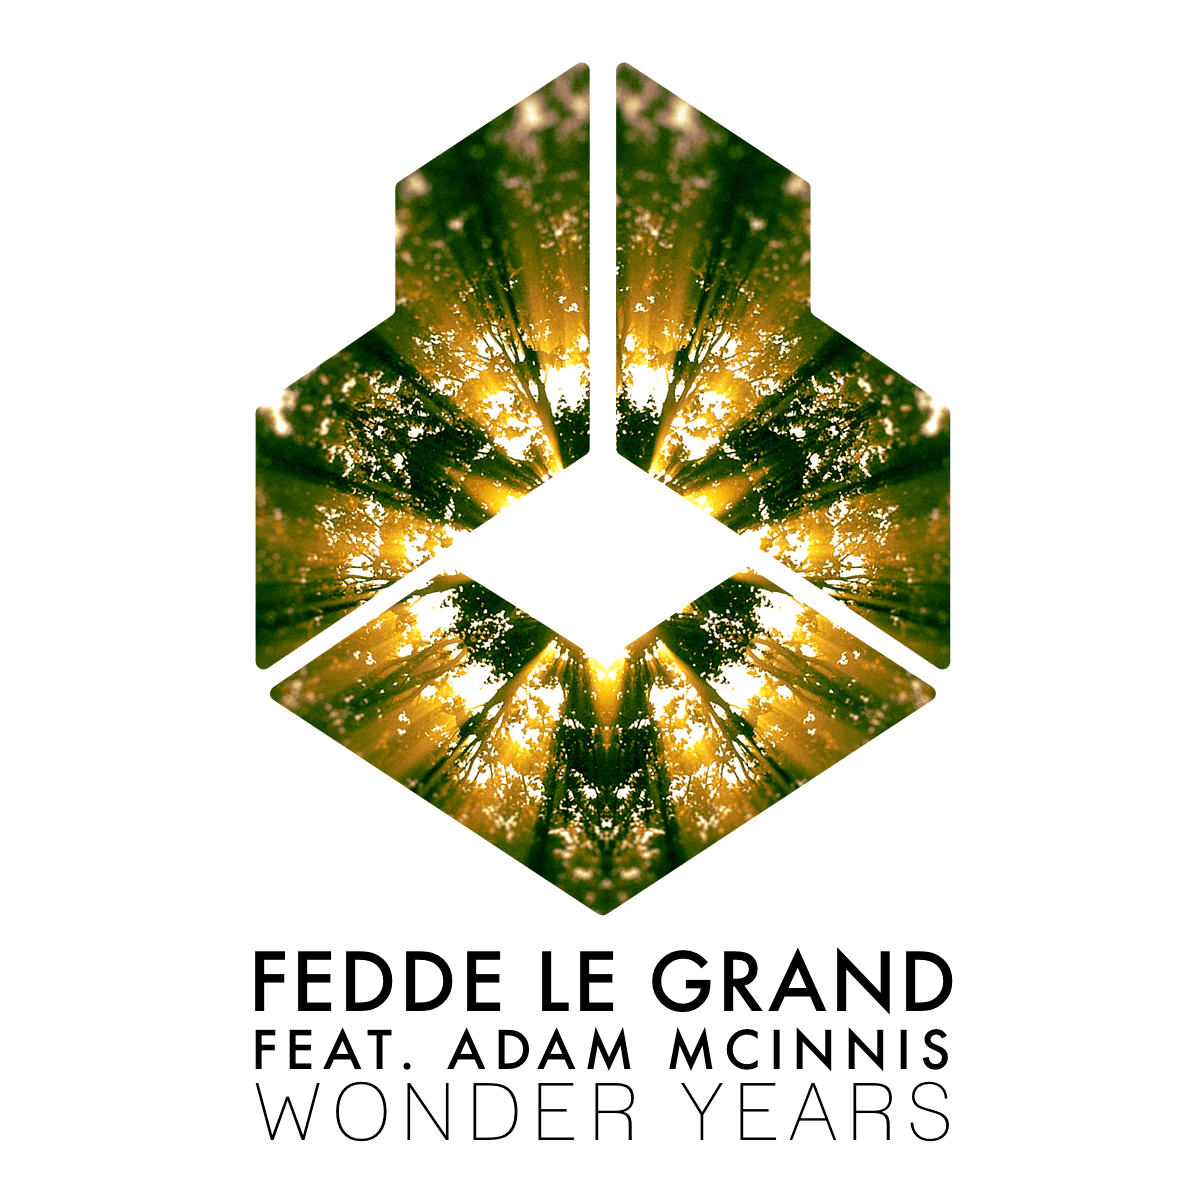 FEDDE LE GRAND FEAT. ADAM MCINNIS – WONDER YEARS [OUT NOW ON DARKLIGHT RECORDINGS]